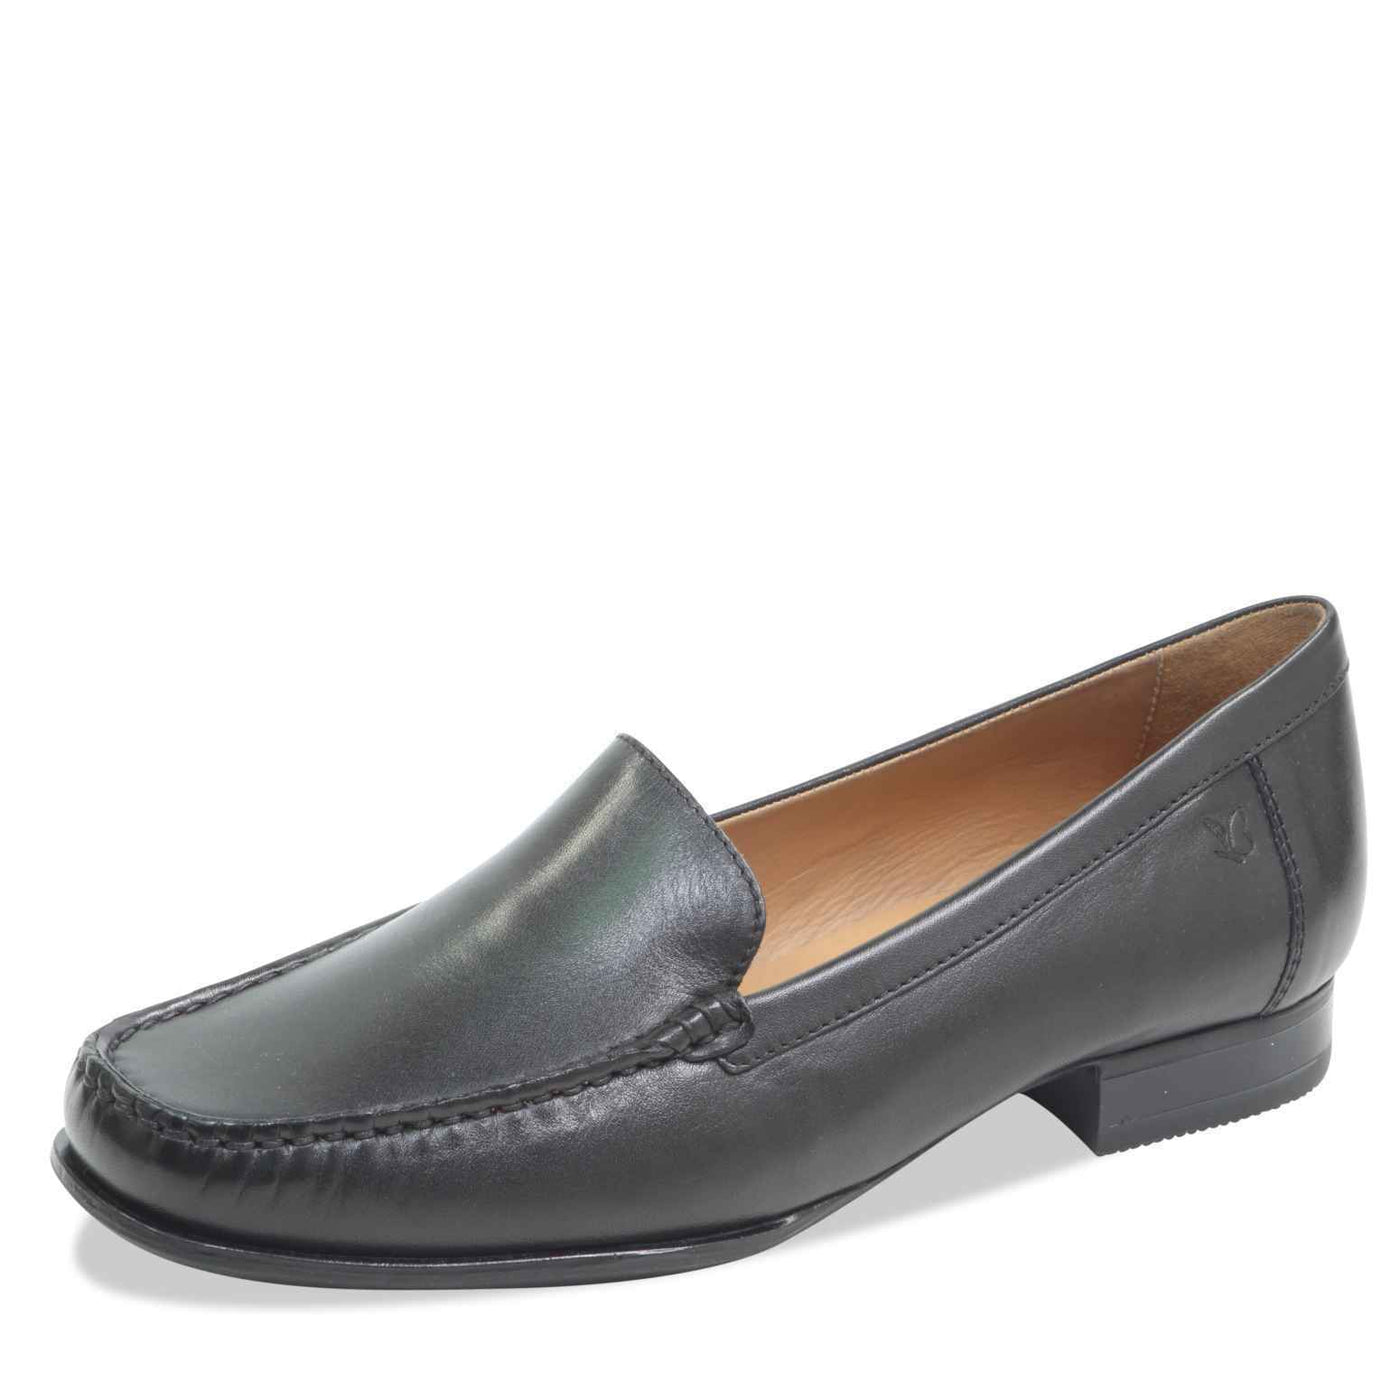 discount big discount super popular Caprice 9-22309-20 855 Black Womens Ocean Nappa Leather Loafers Smart Shoes  Slip On Casual